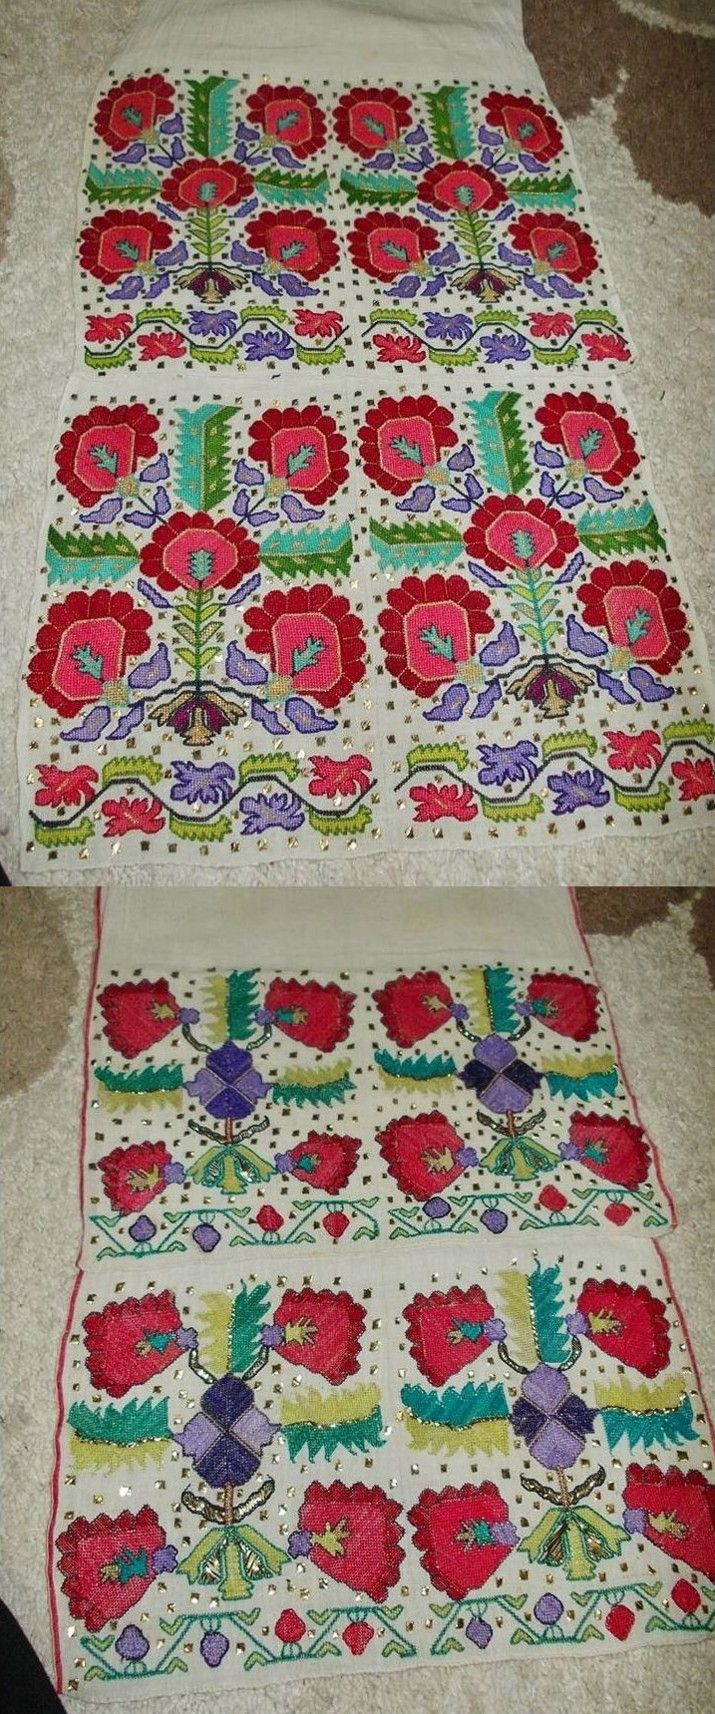 The embroidered ends of two 'uçkur' (waistband) from the Bolu province. First half of 20th century. Stylized vegetable/floral motifs in 'two-sided embroidery' (front and rear are identical) and small squares in 'tel kırma'-technique (geometrical motives obtained by sticking narrow metallic strips through the fabric and folding them. The motifs are identical on both sides of the fabric). Source: 'Antika Osmanlı Tekstil, Istanbul'.